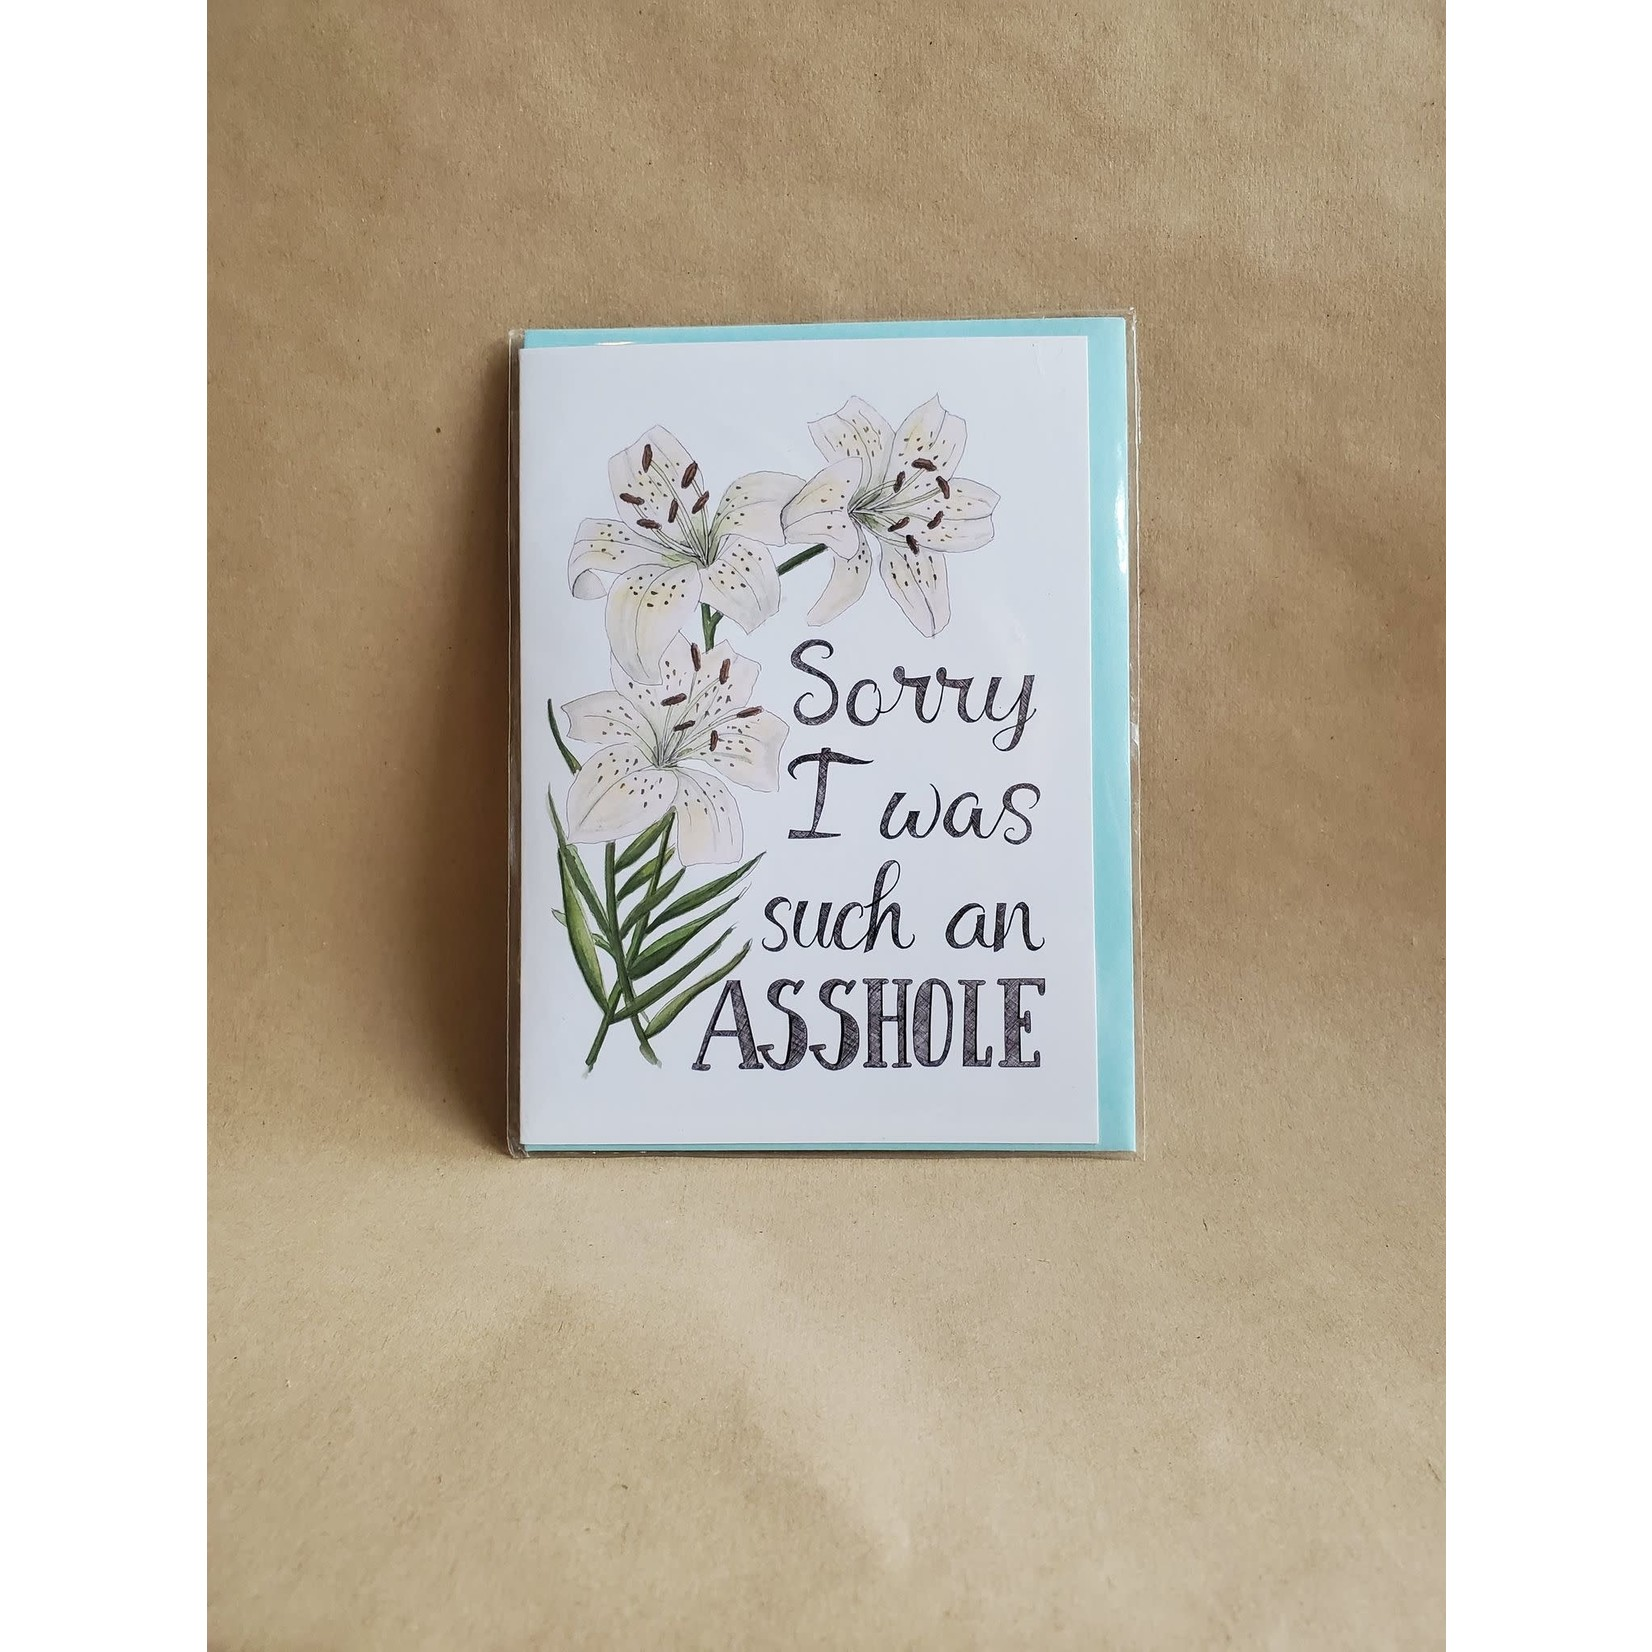 Sorry I was such an asshole card